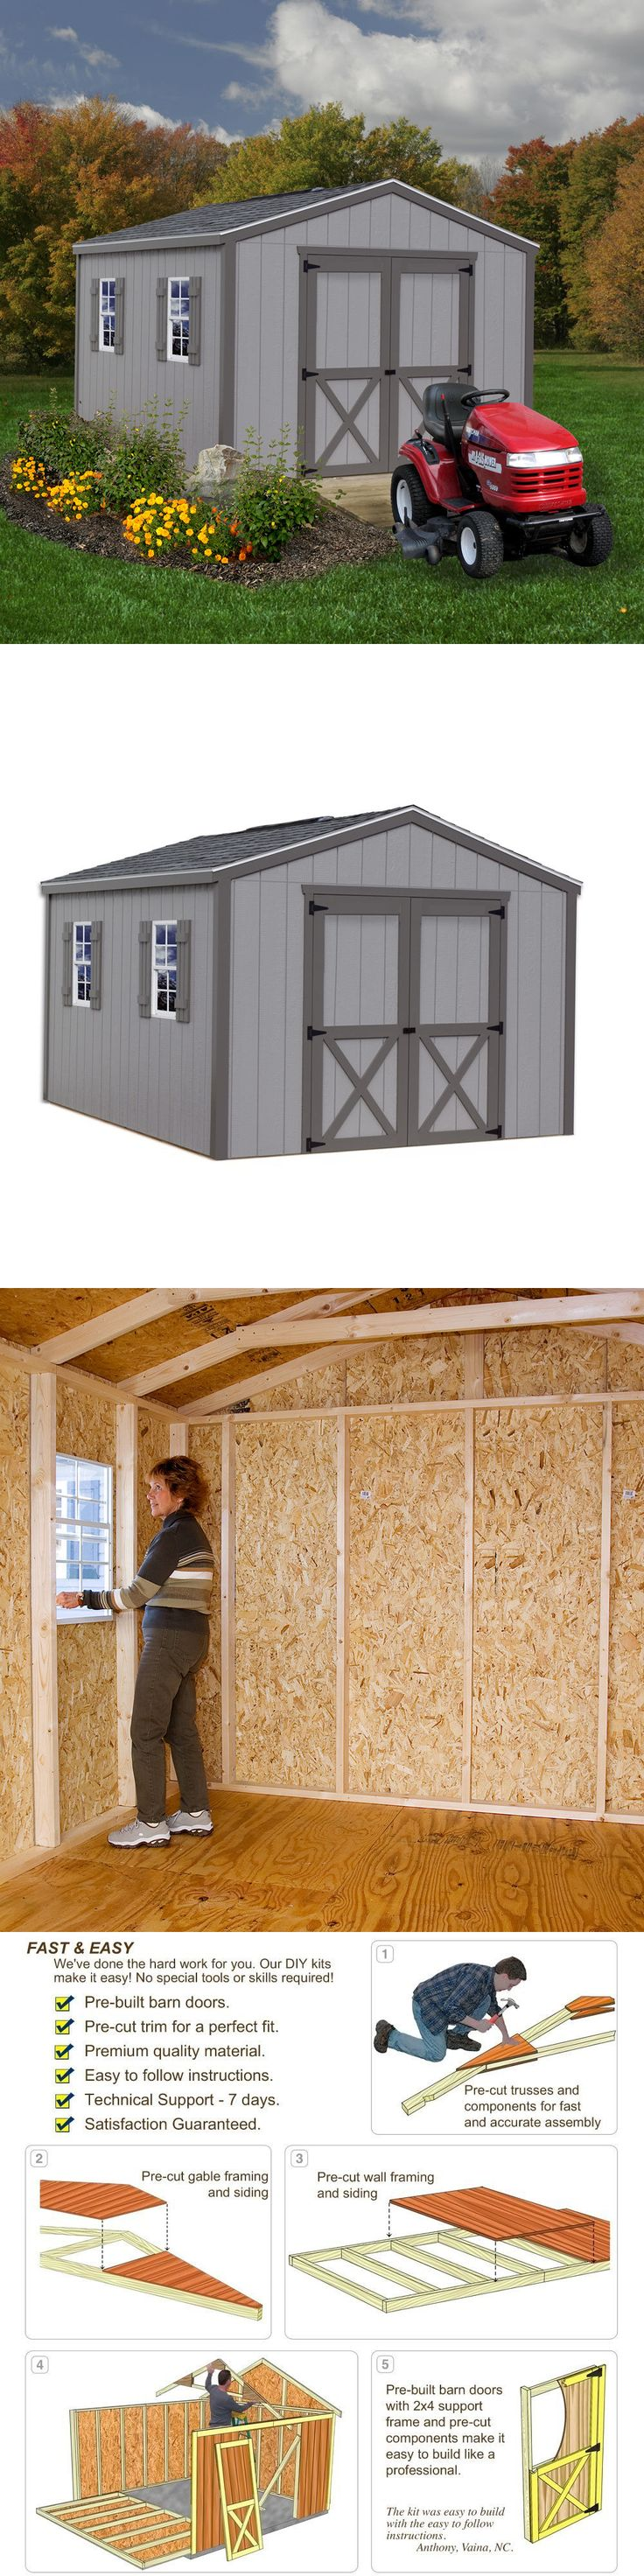 Garden and Storage Sheds 139956: Best Barns Elm 10X16 Shed Kit -> BUY IT NOW ONLY: $1995 on eBay!